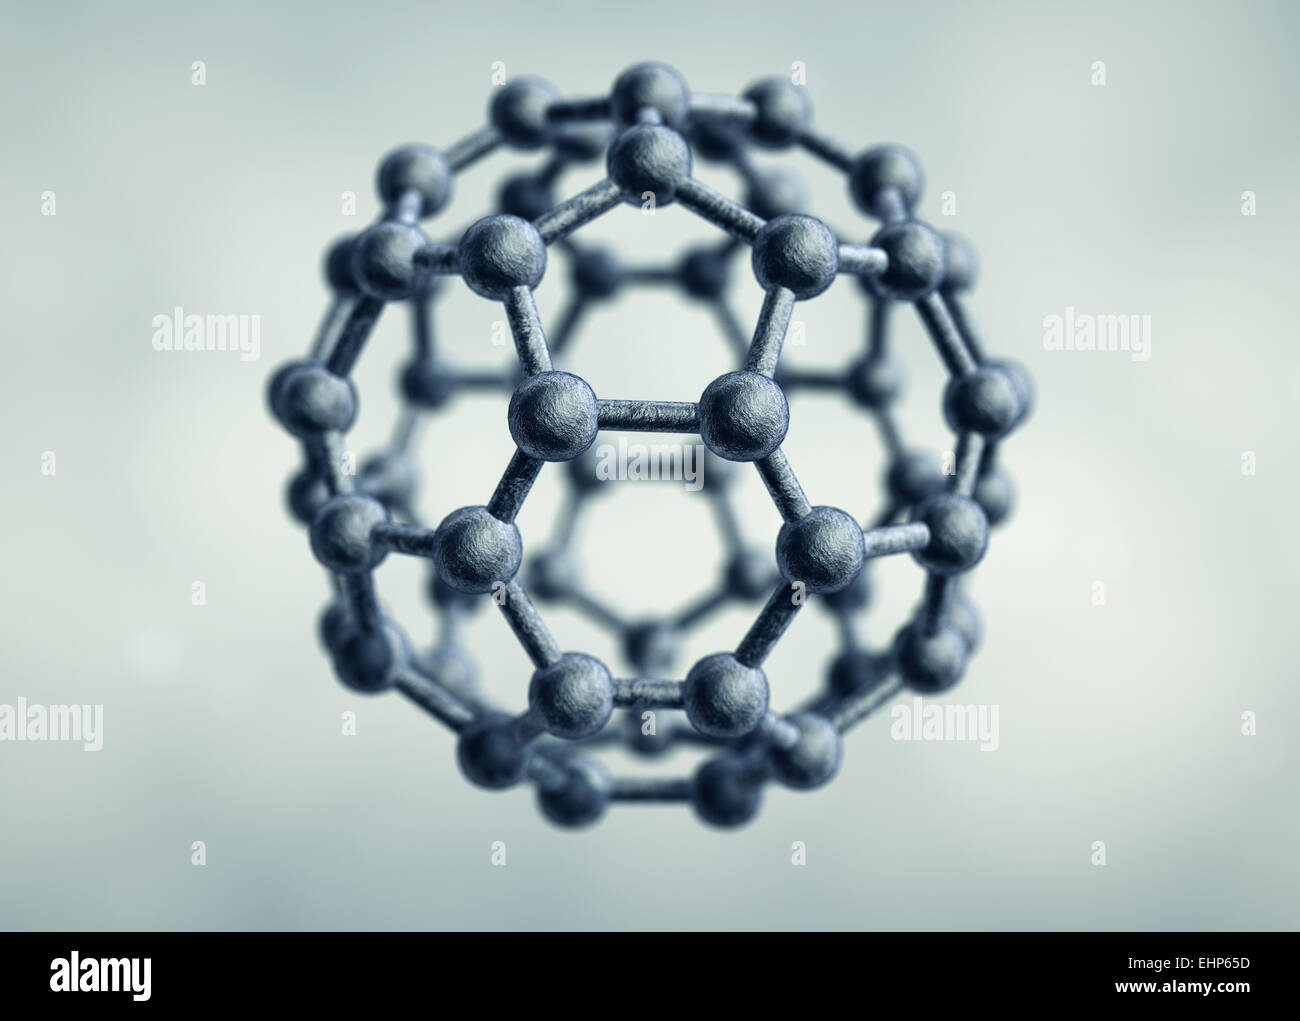 Molecule of Graphene - Stock Image